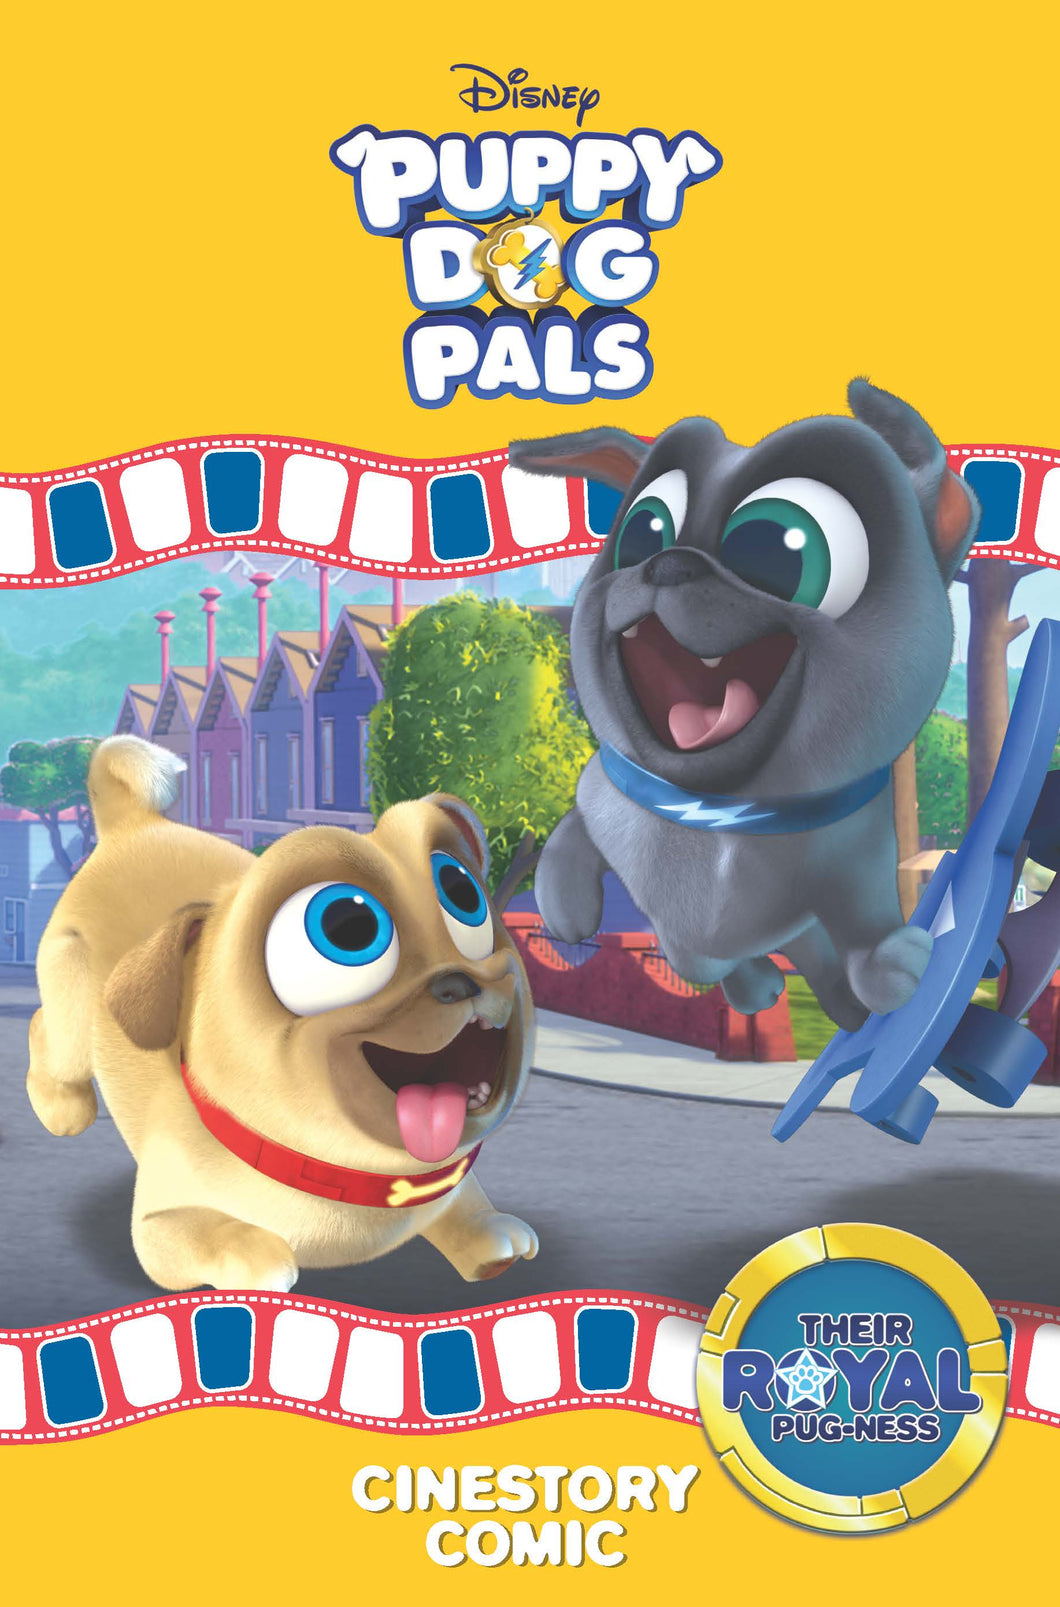 Disney Puppy Dog Pals: Their Royal Pug-ness Cinestory Comic